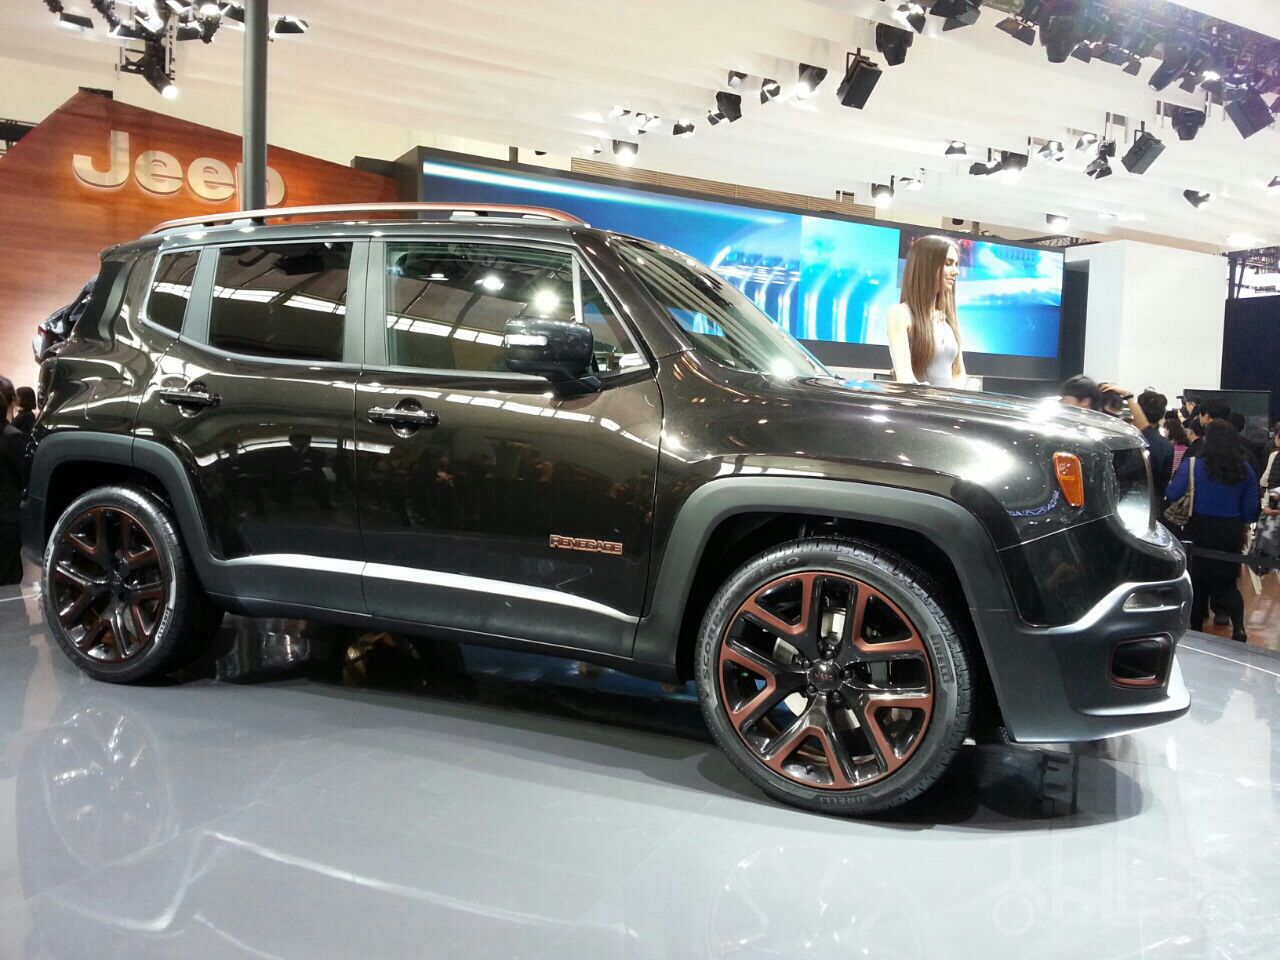 New Jeep Renegade Custom Jeep Renegade Jeep Wheels Jeep